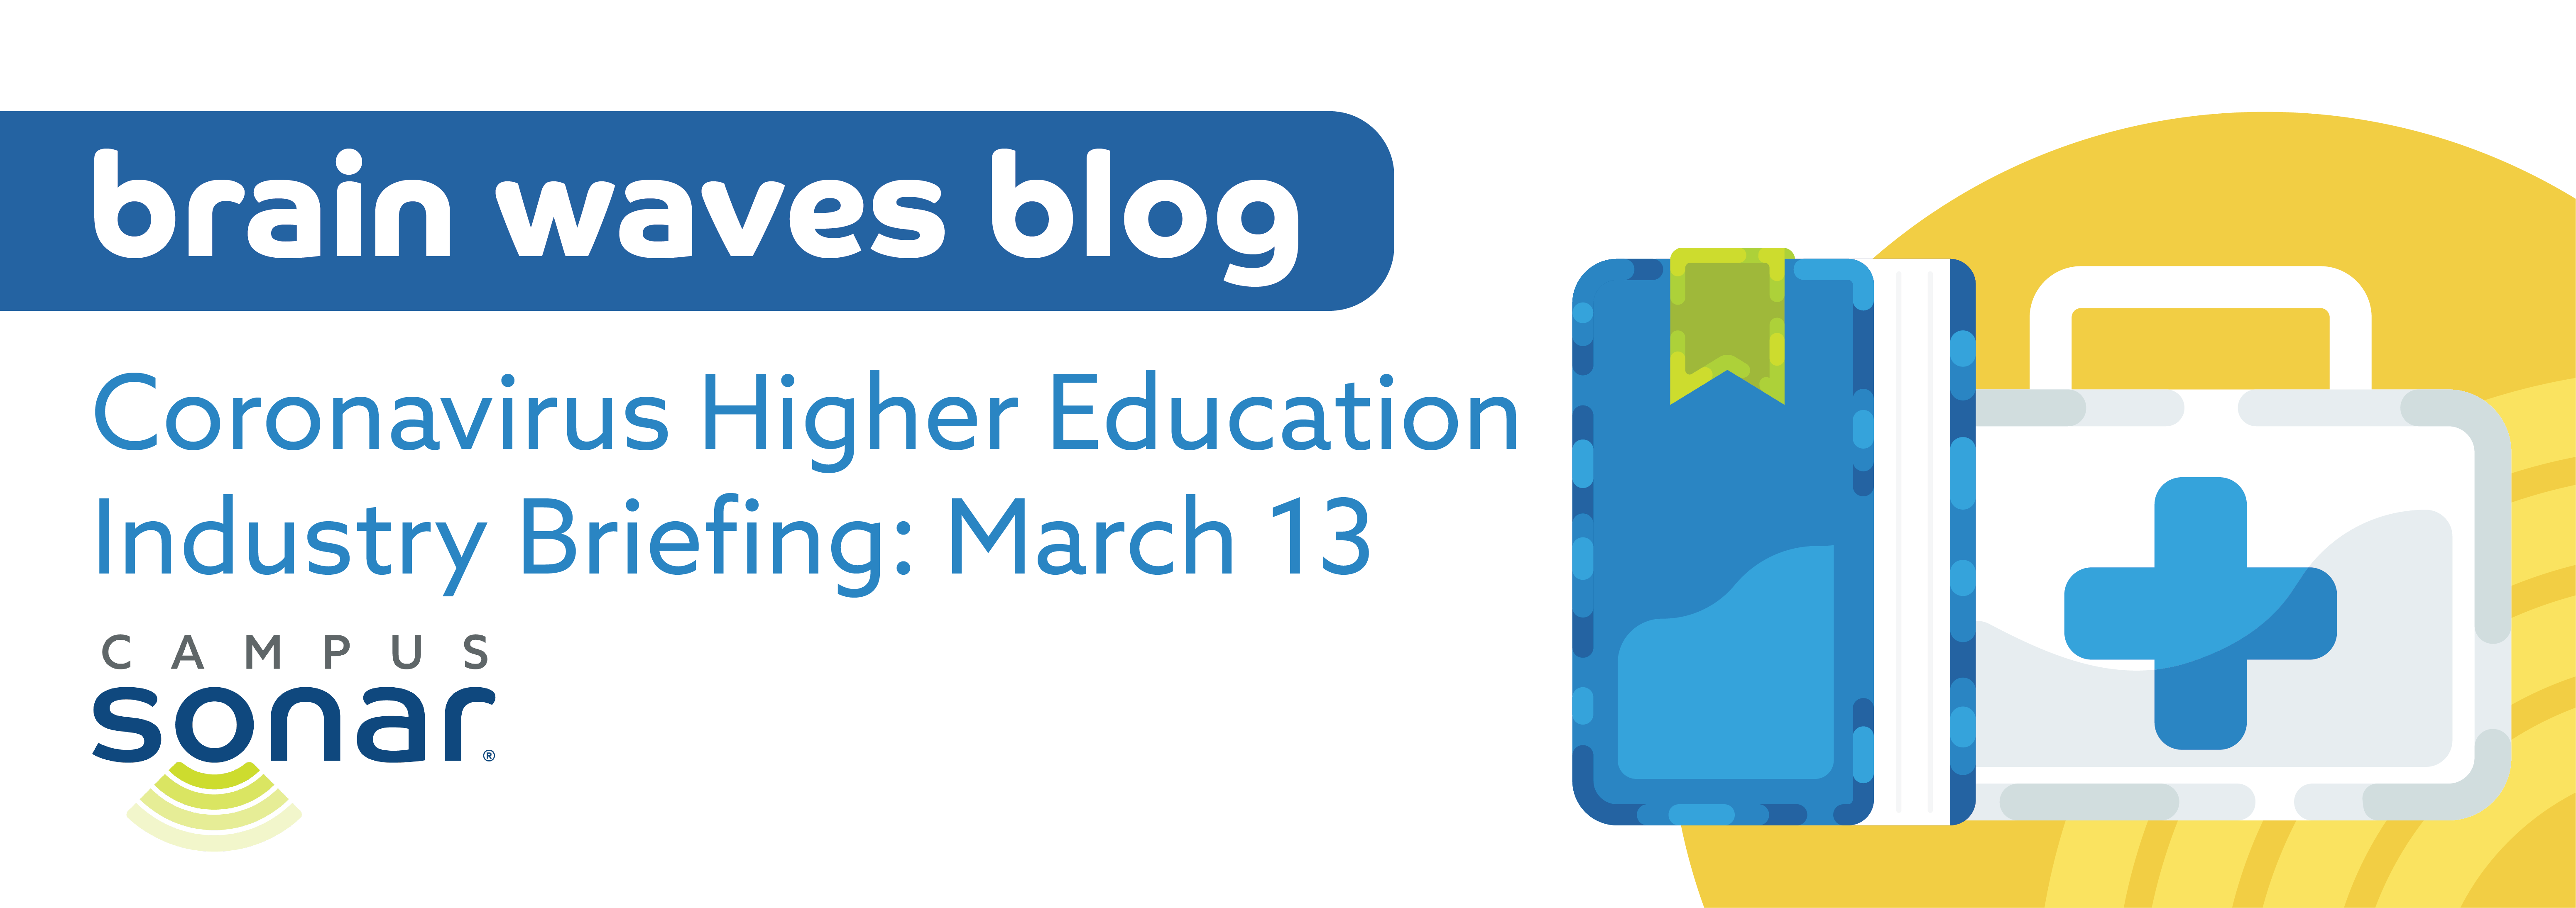 Blog post image for Coronavirus Higher Education Industry Briefing: March 13